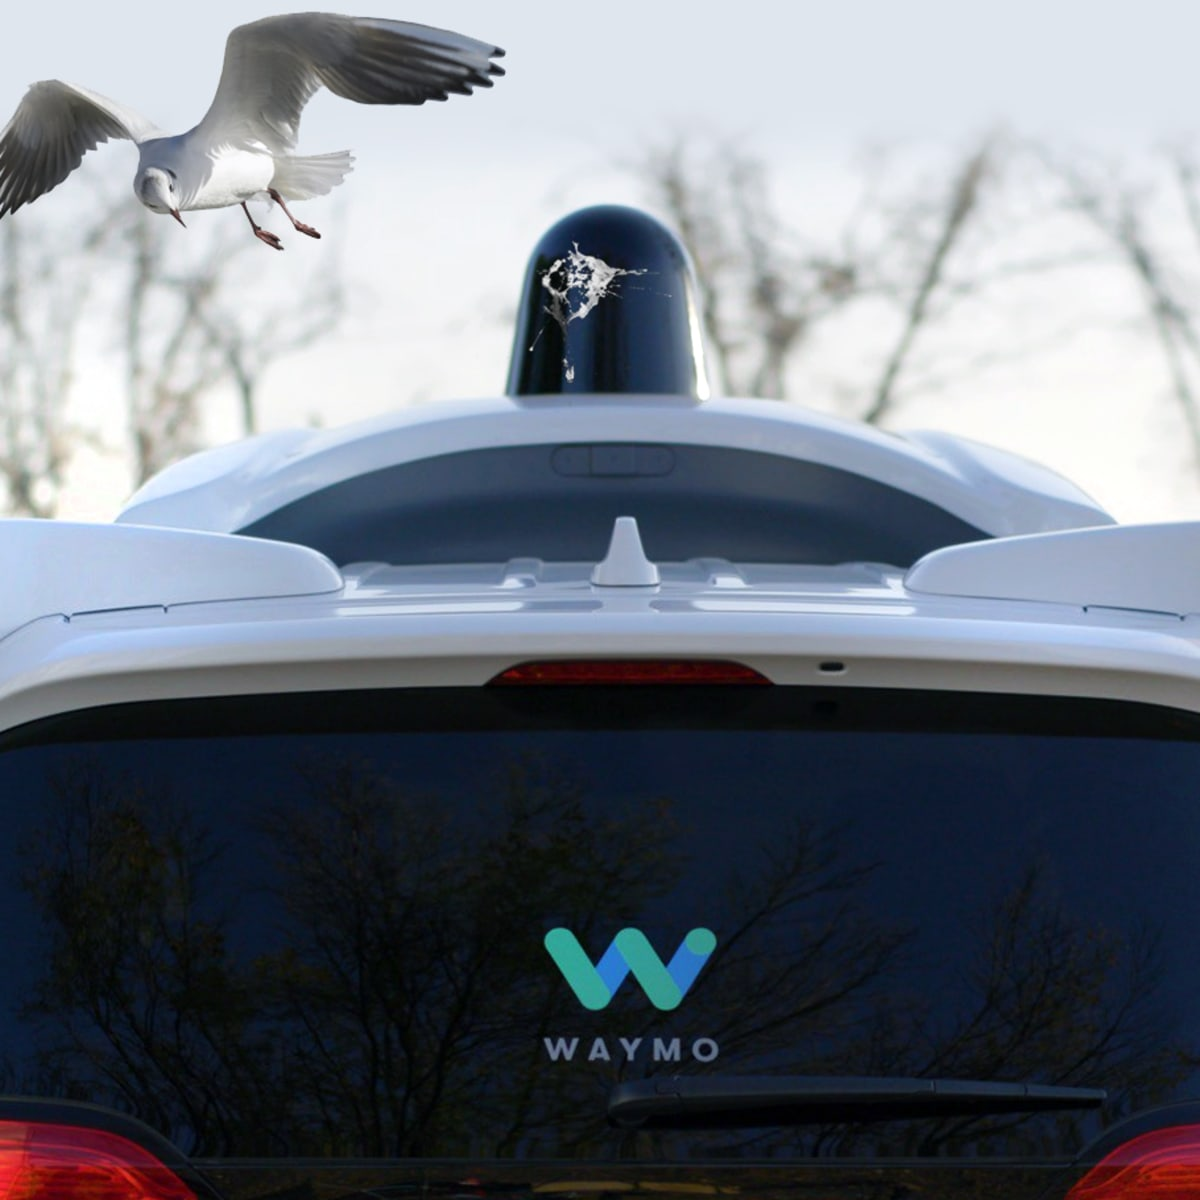 No shit: Google's Waymo uses clever rotating blades to wipe